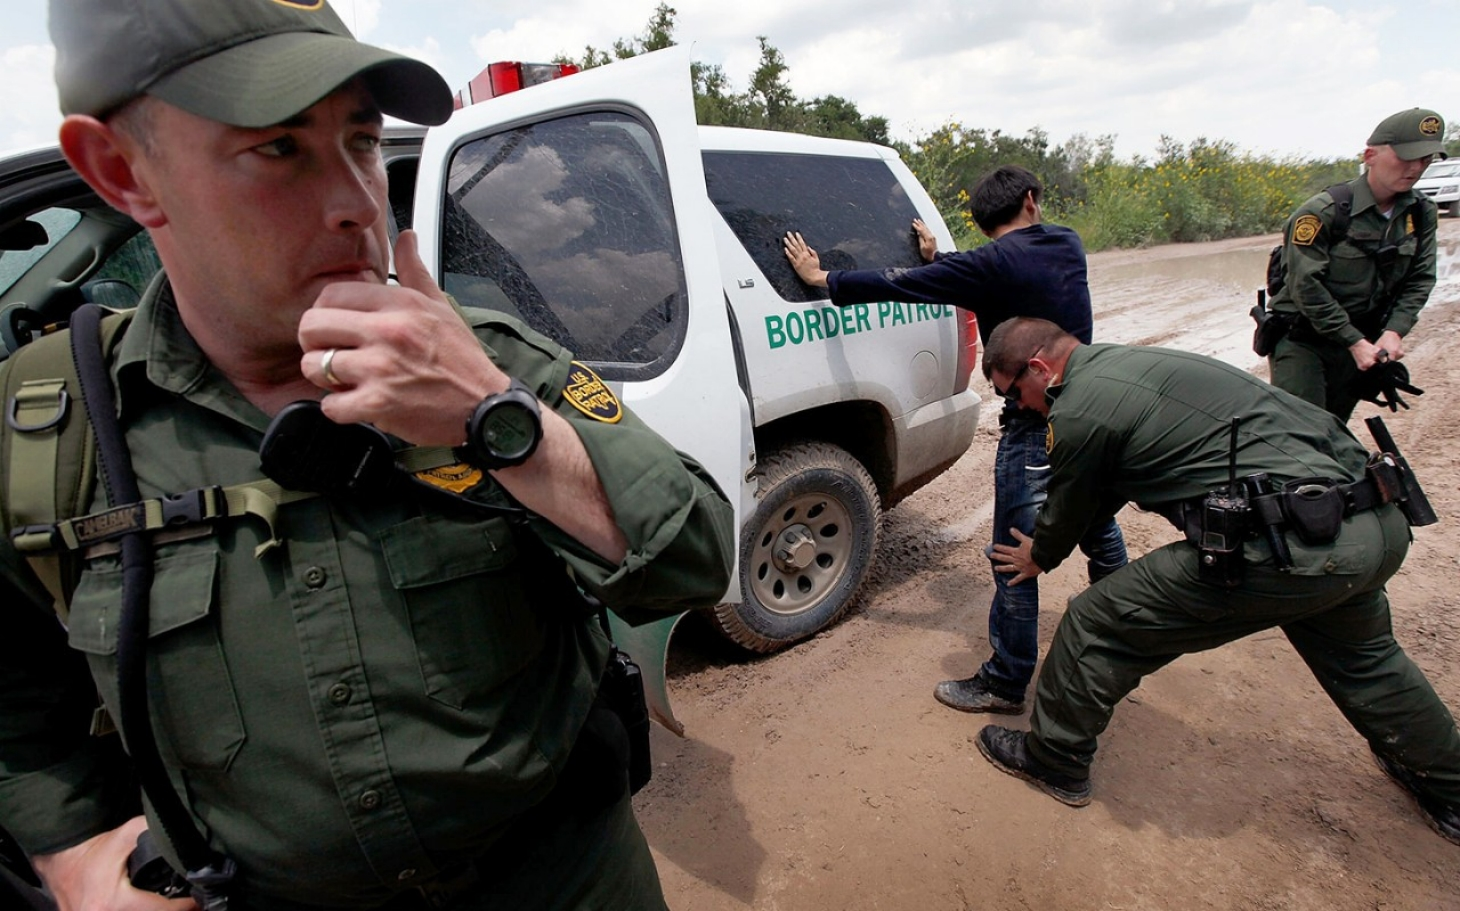 Border Patrol unlawfully deporting potential asylum seekers | Al Jazeera America